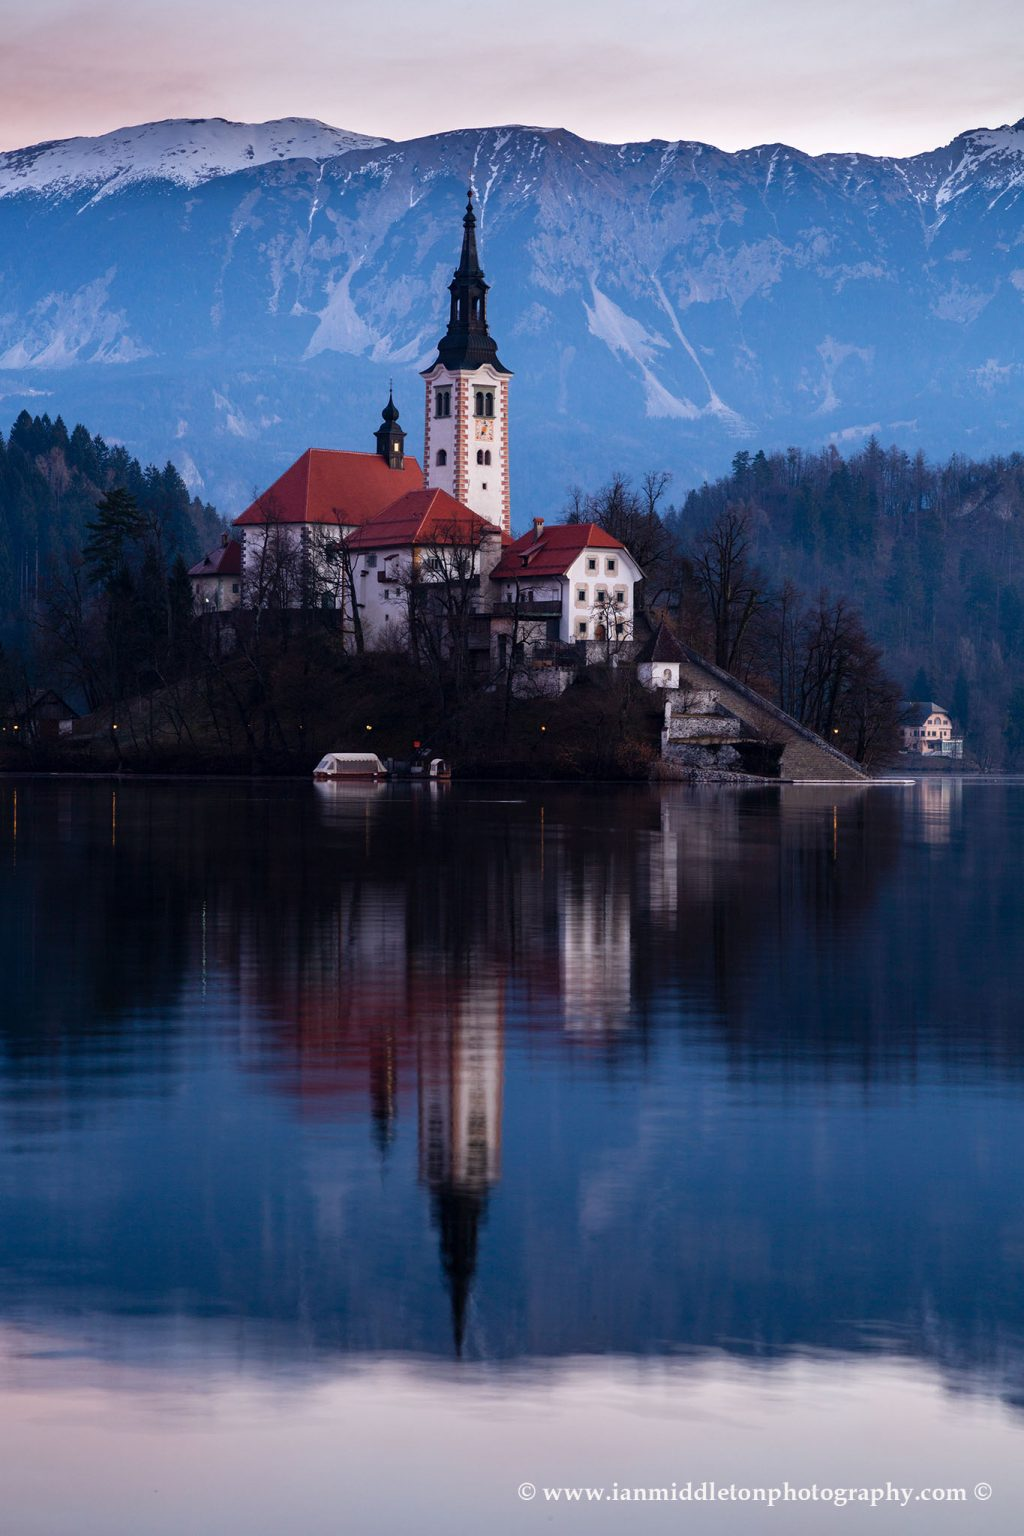 Morning light at Lake Bled's island church with the Karavanke Mountains behind, Slovenia.